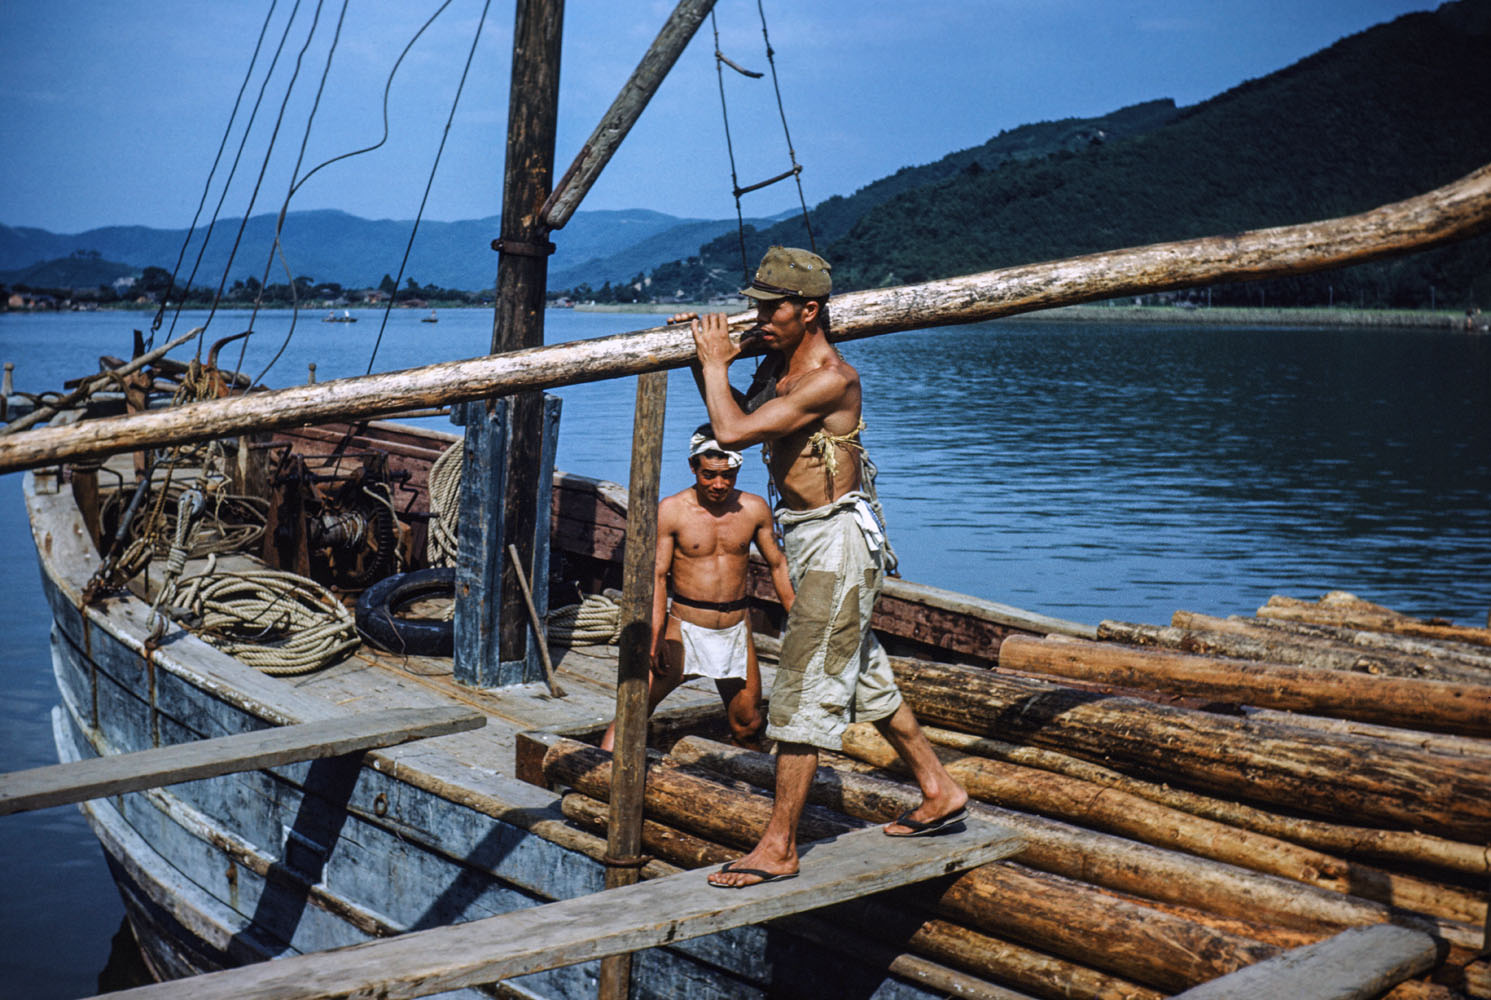 409-Man Unloading timber from boat, Location?